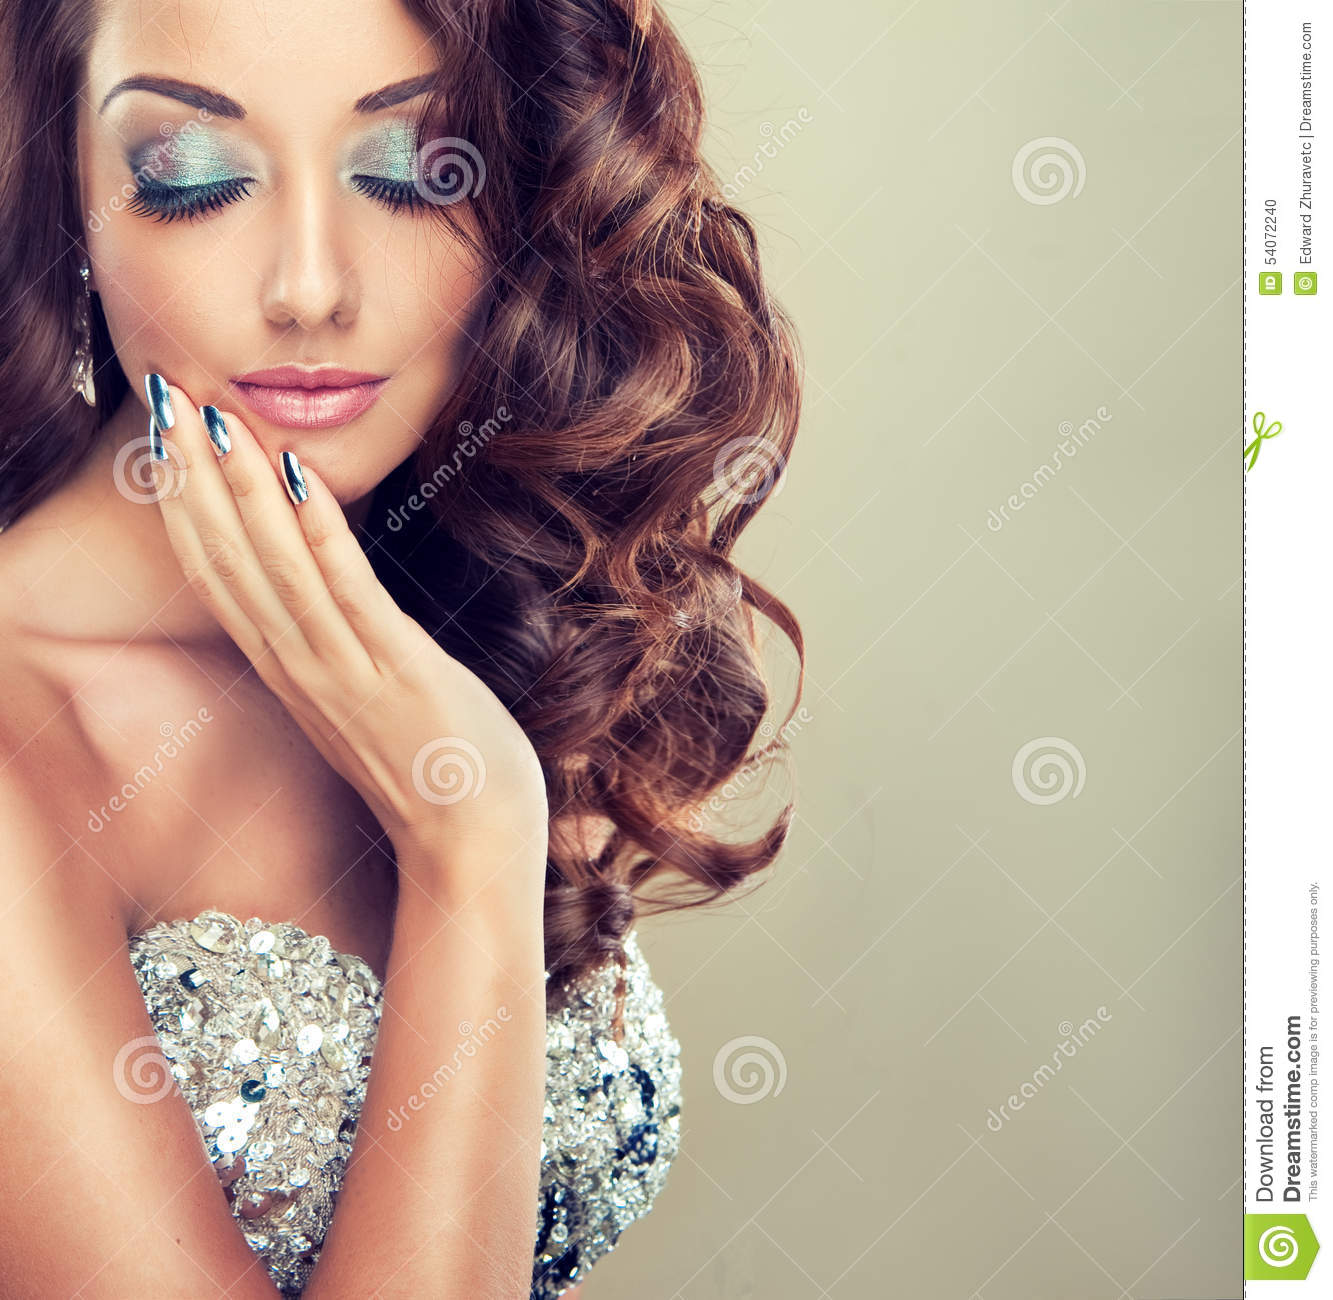 Beautiful Model With Long Curly Hair Stock Photo - Image of elegance ...